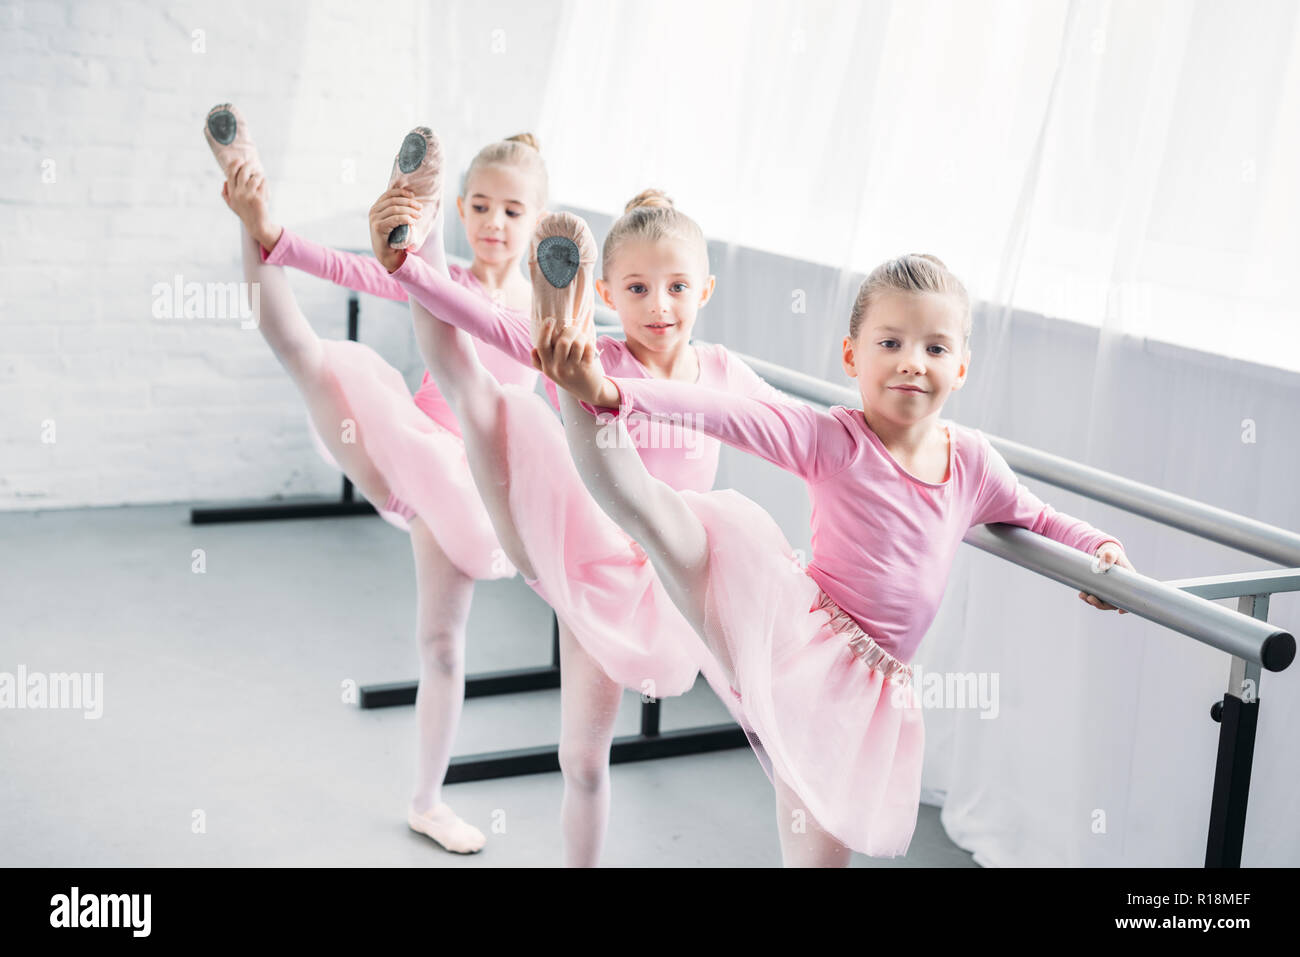 adorable kids in pink tutu skirts practicing ballet and looking at camera in ballet school - Stock Image